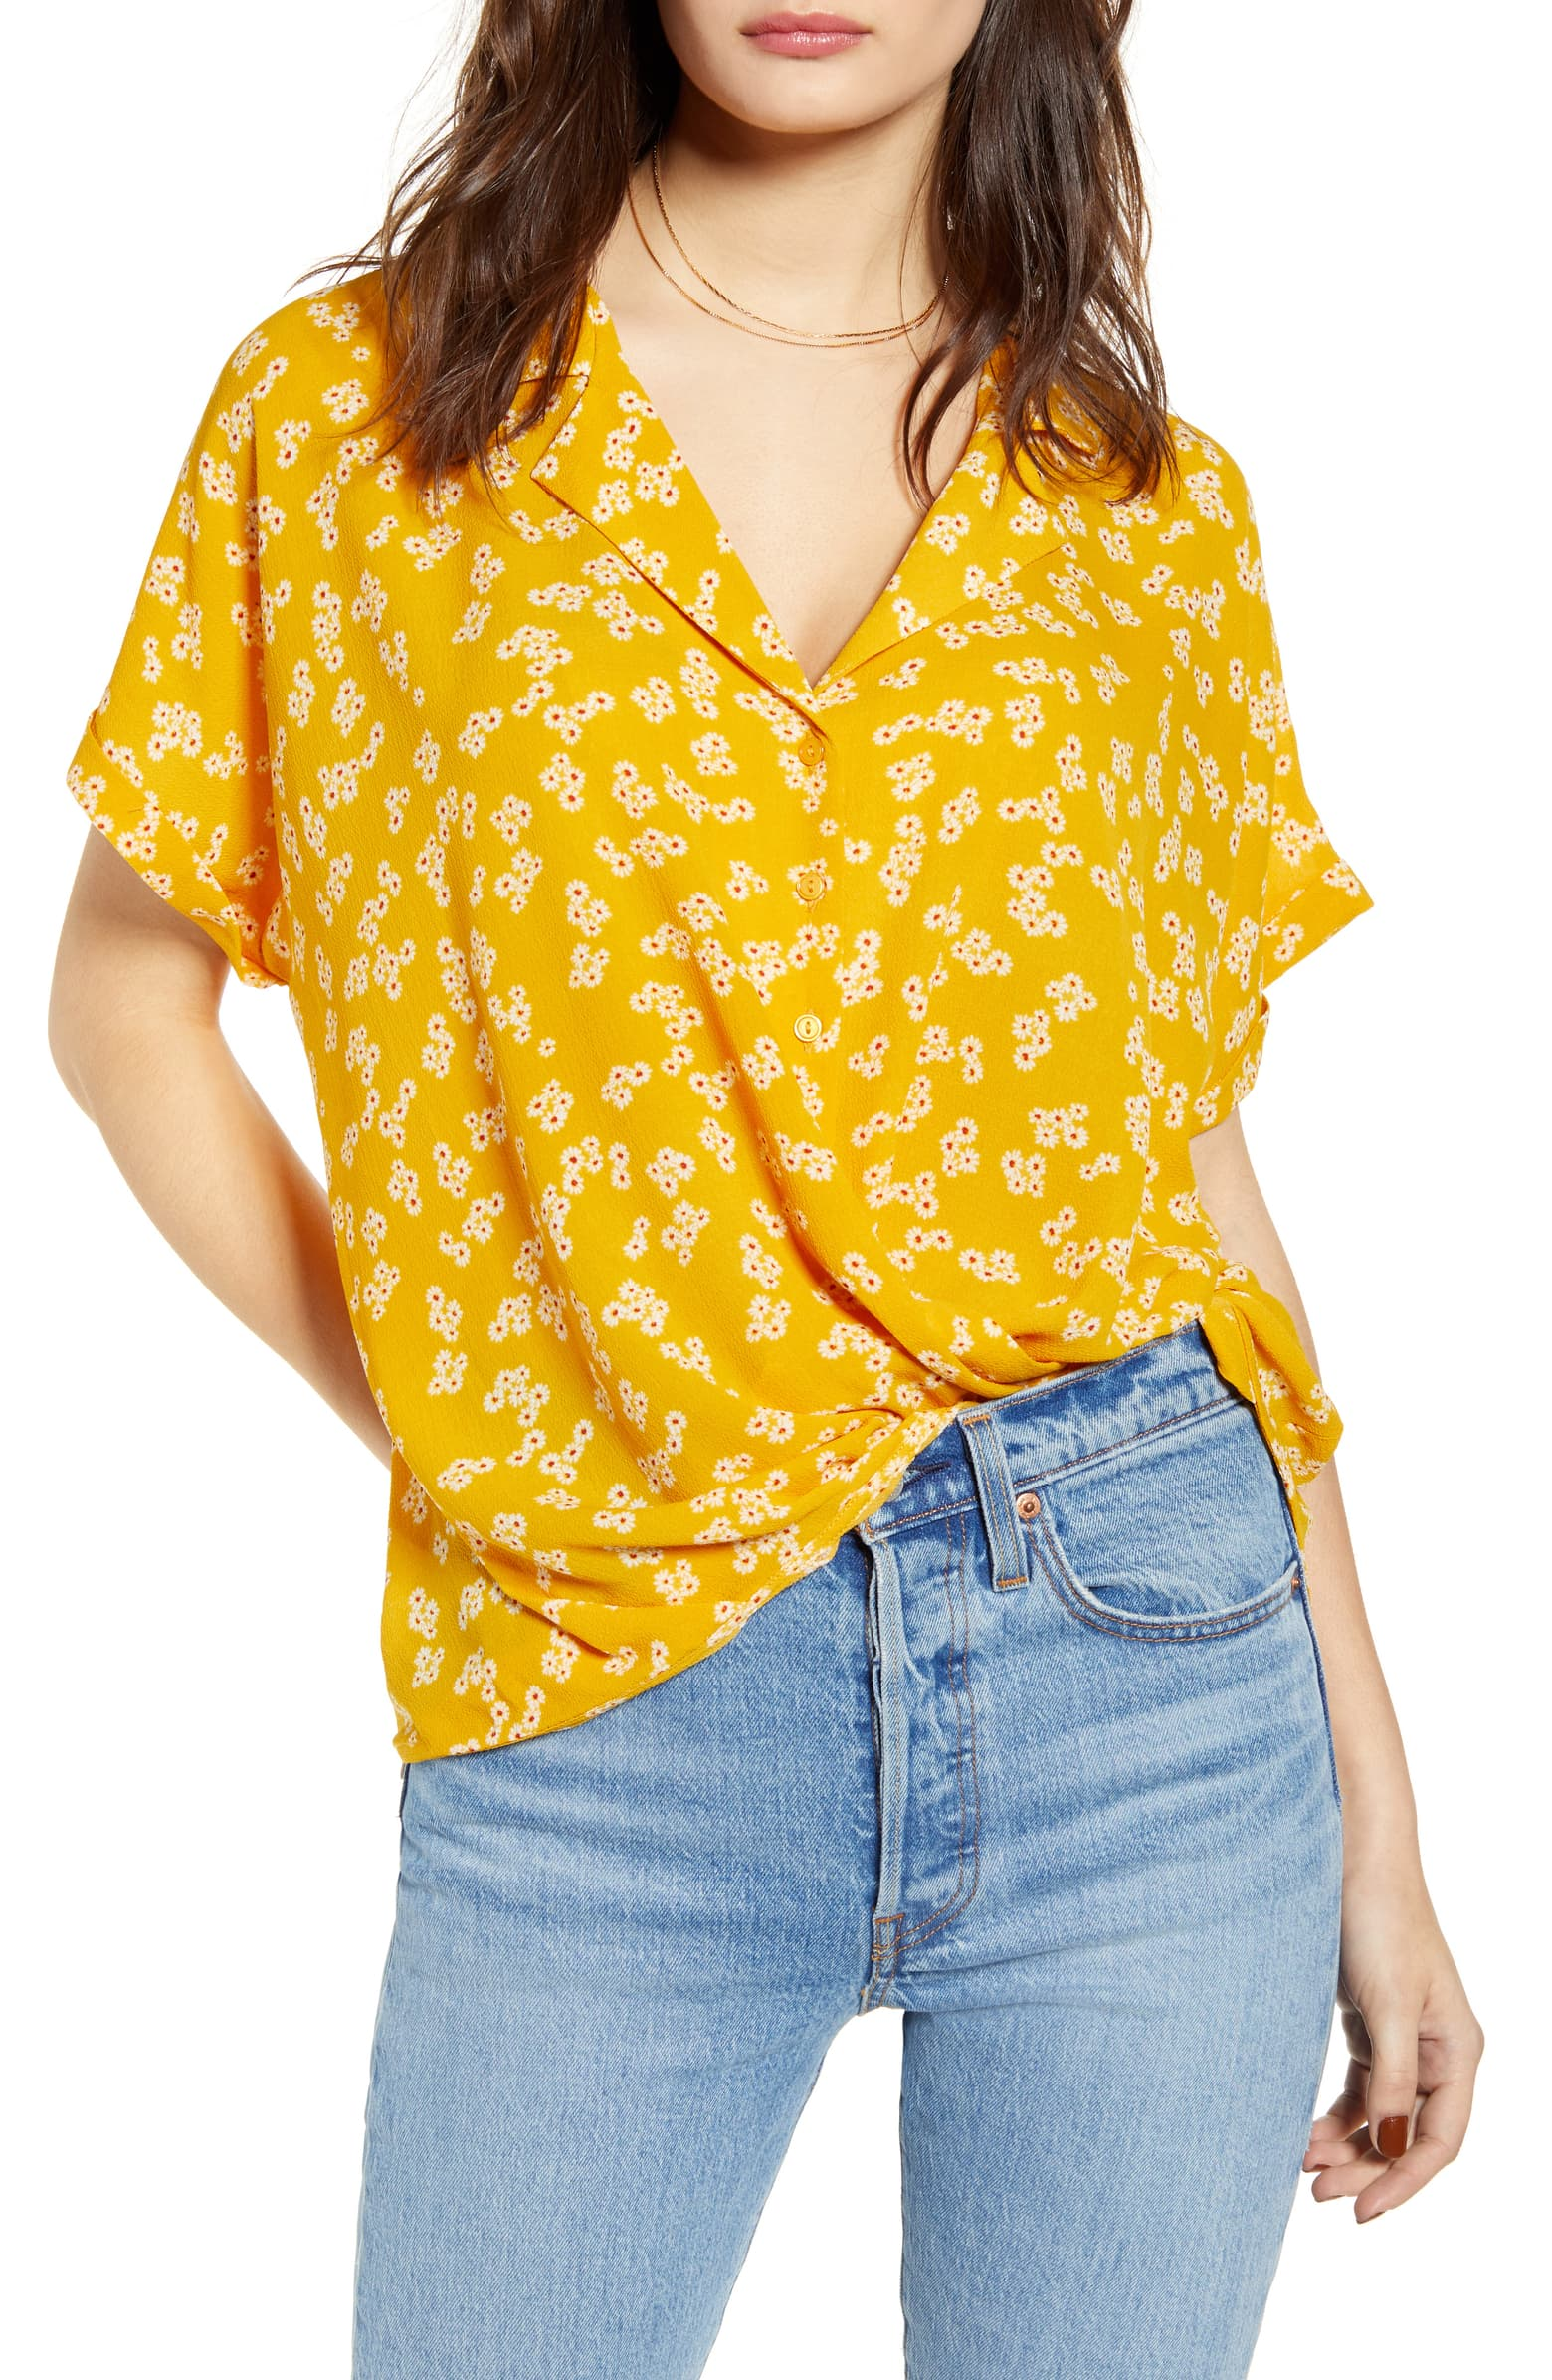 Originally ordered this in an XL, but when it arrived it was way too big, so I'd say size down for this shirt!